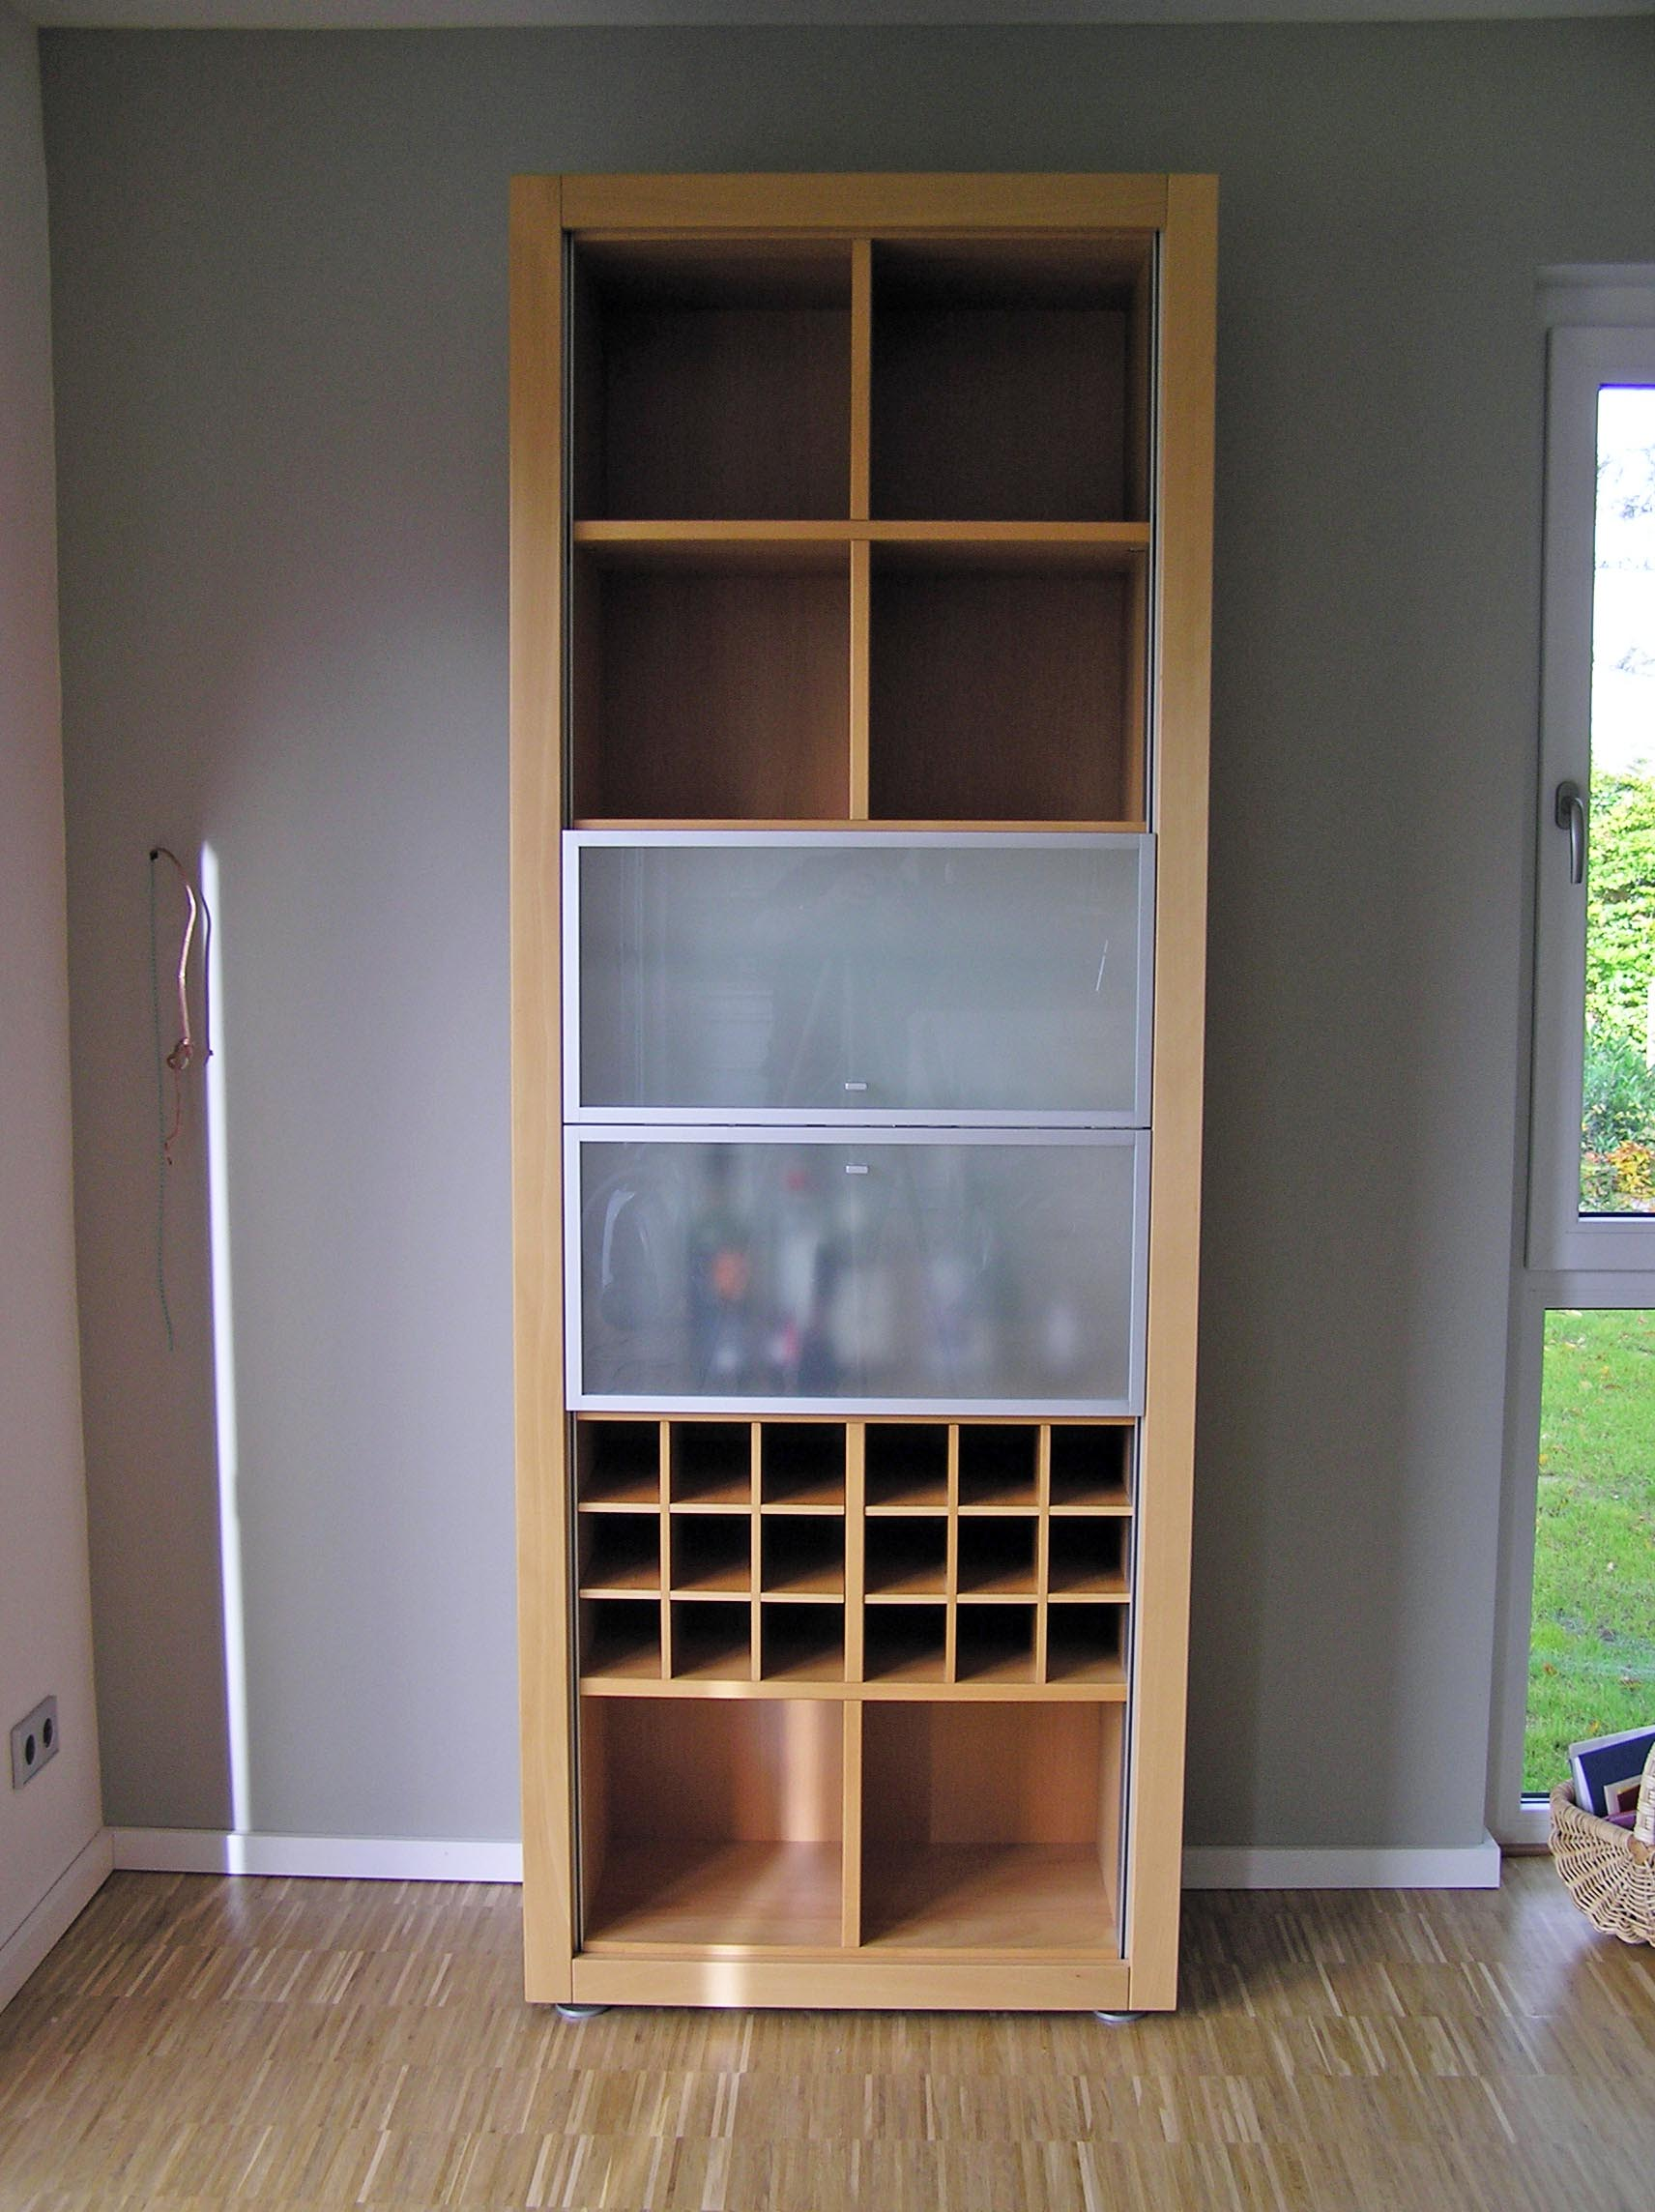 h lsta xelo buche schrank vitrine barschrank 225x83 hh ebay. Black Bedroom Furniture Sets. Home Design Ideas